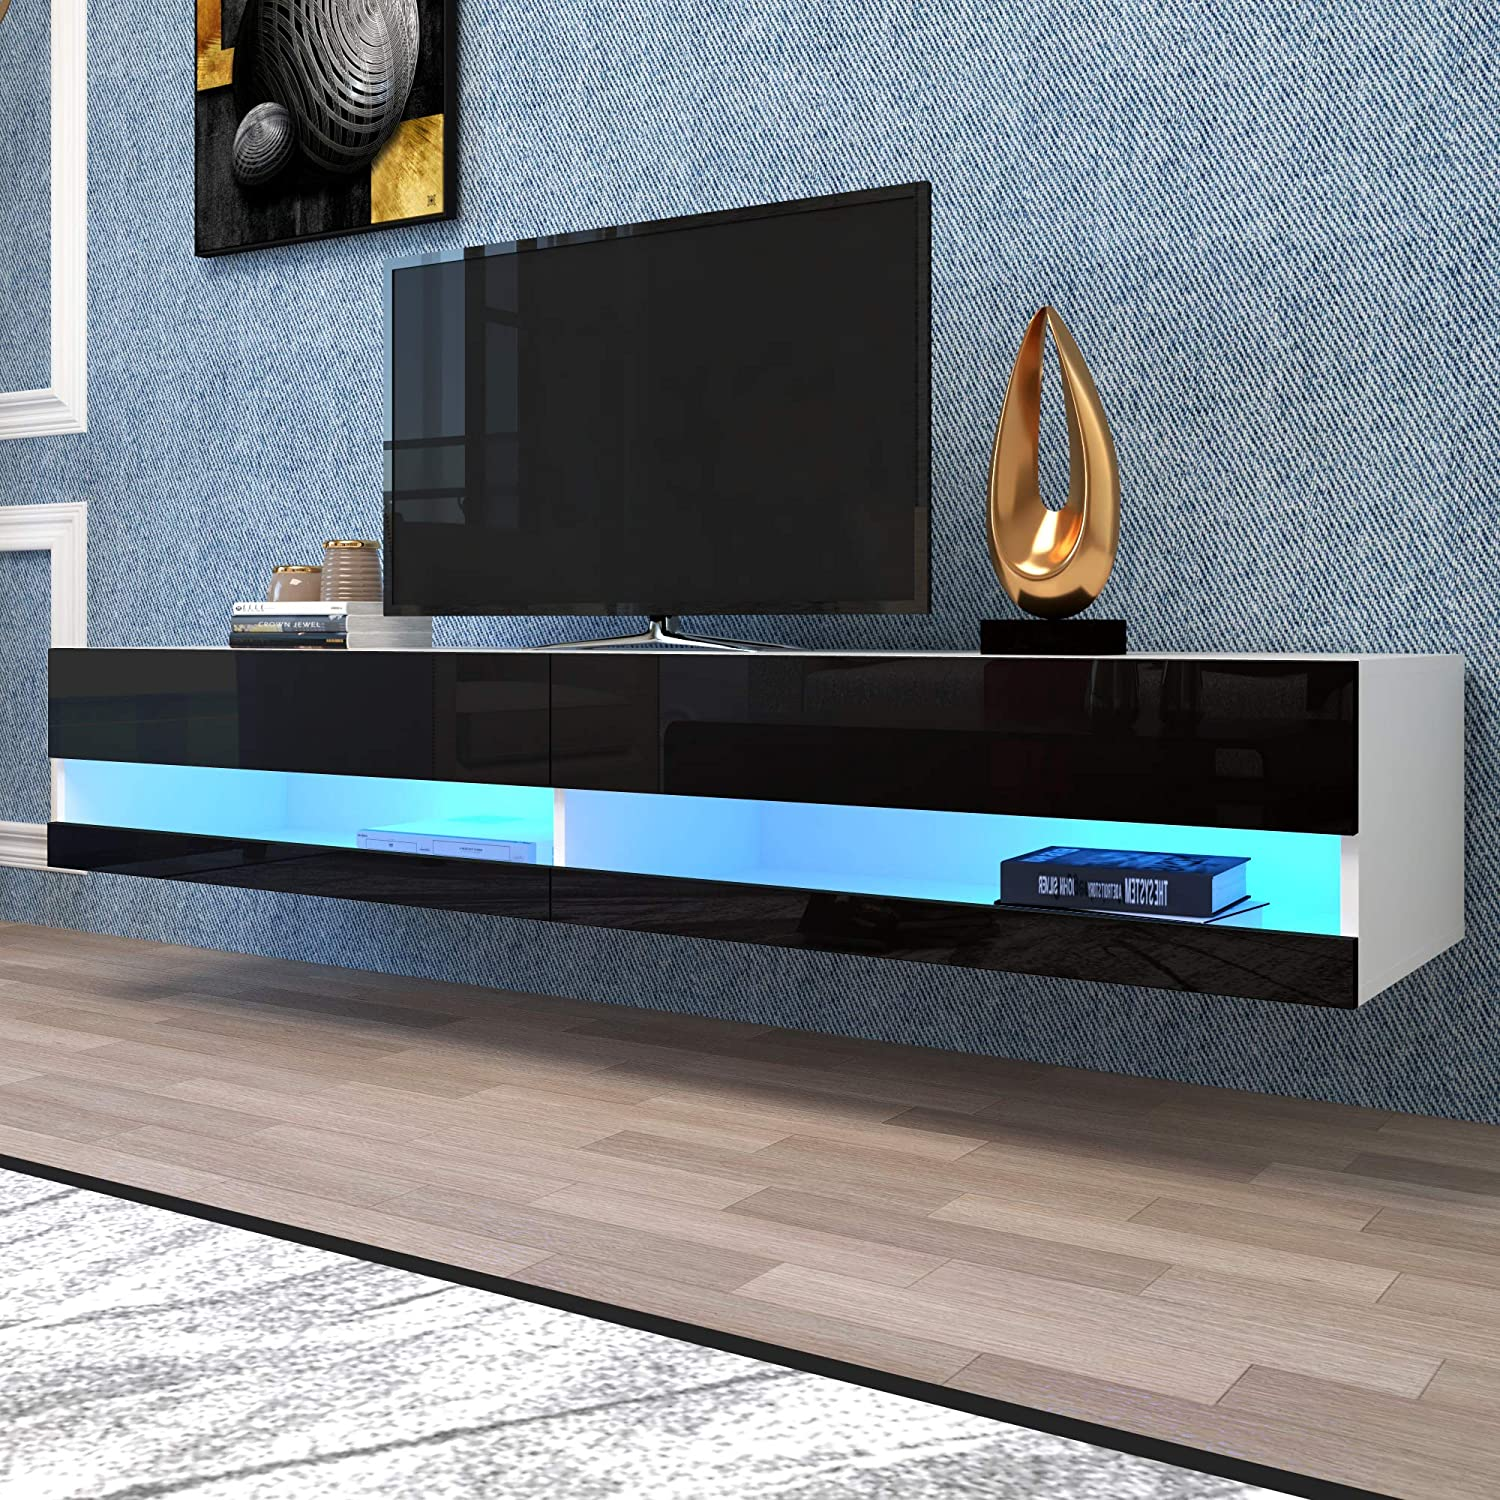 CIPACHO TV Stand LED Effects Wall Mounted Entertainment Center Living Room Floating Console Table (Black A)